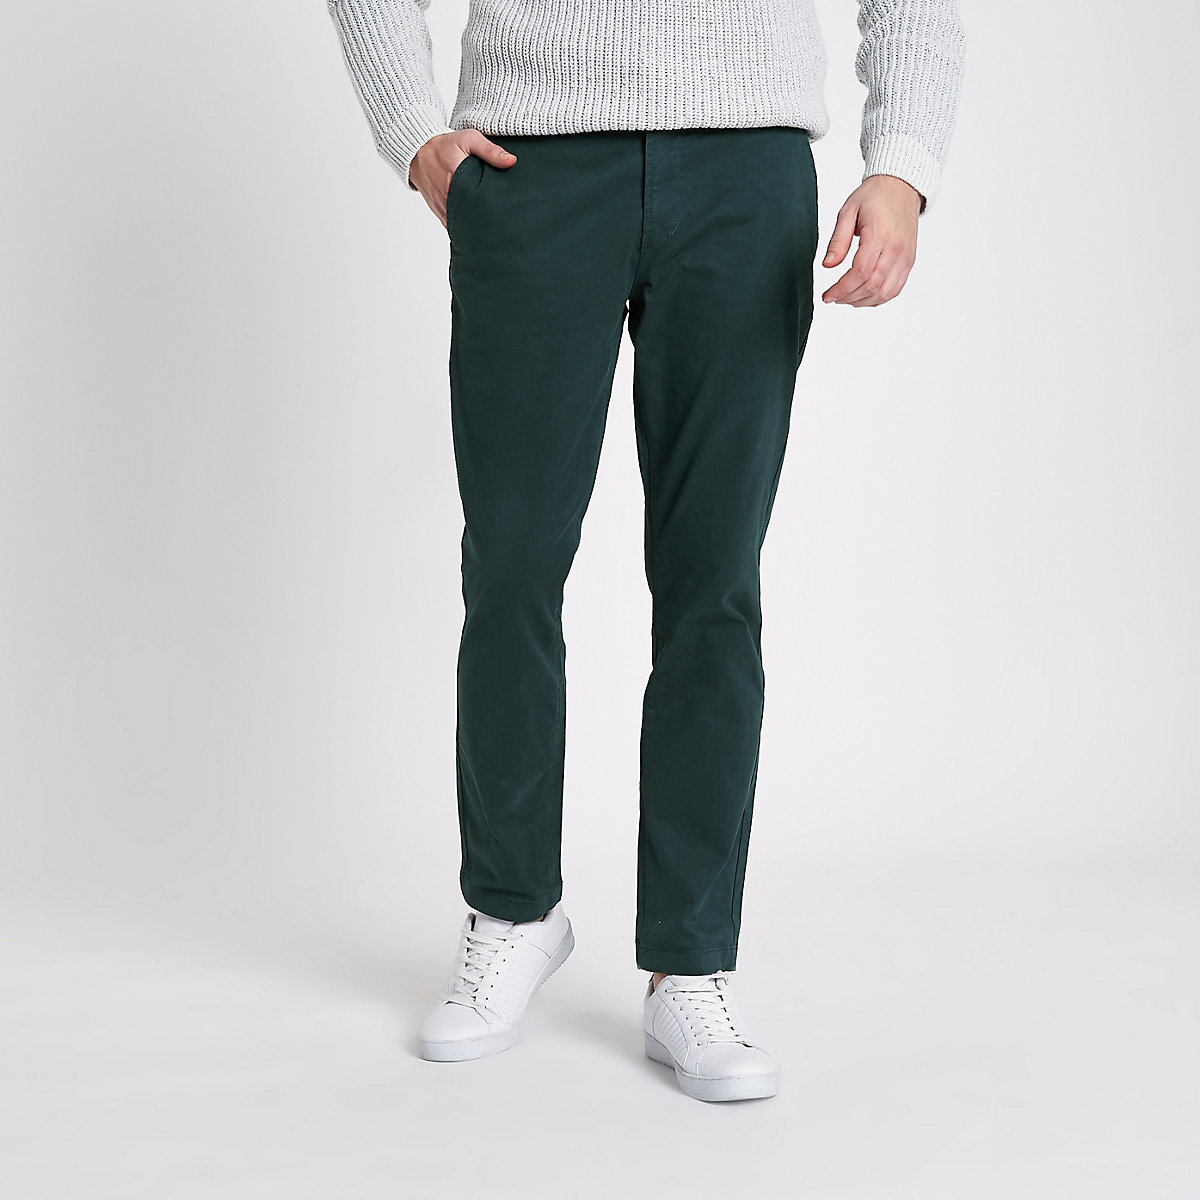 Dark green slim fit chino pants